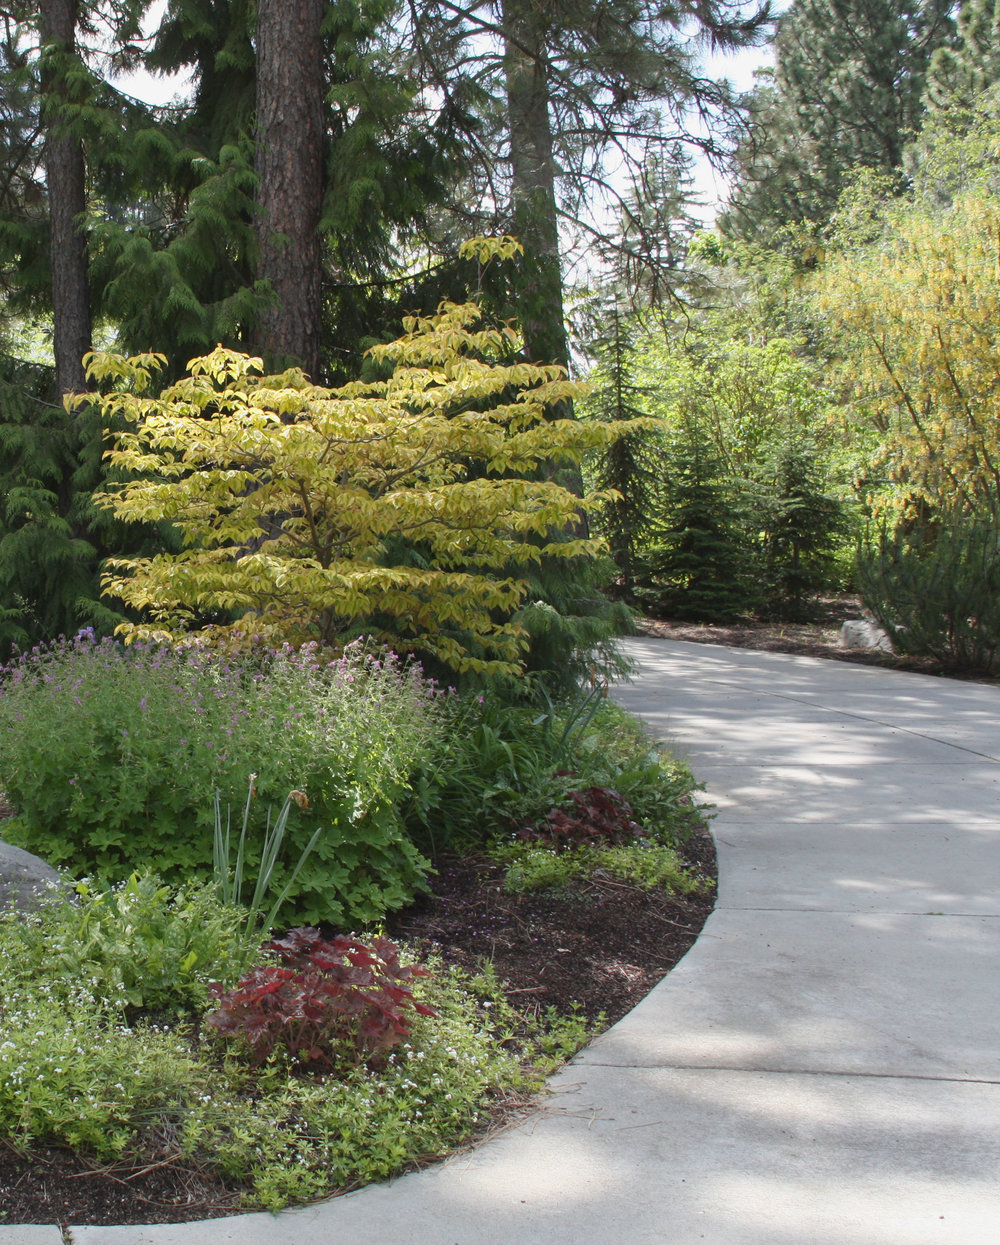 Broom-finished concrete is a popular choice for driveways.